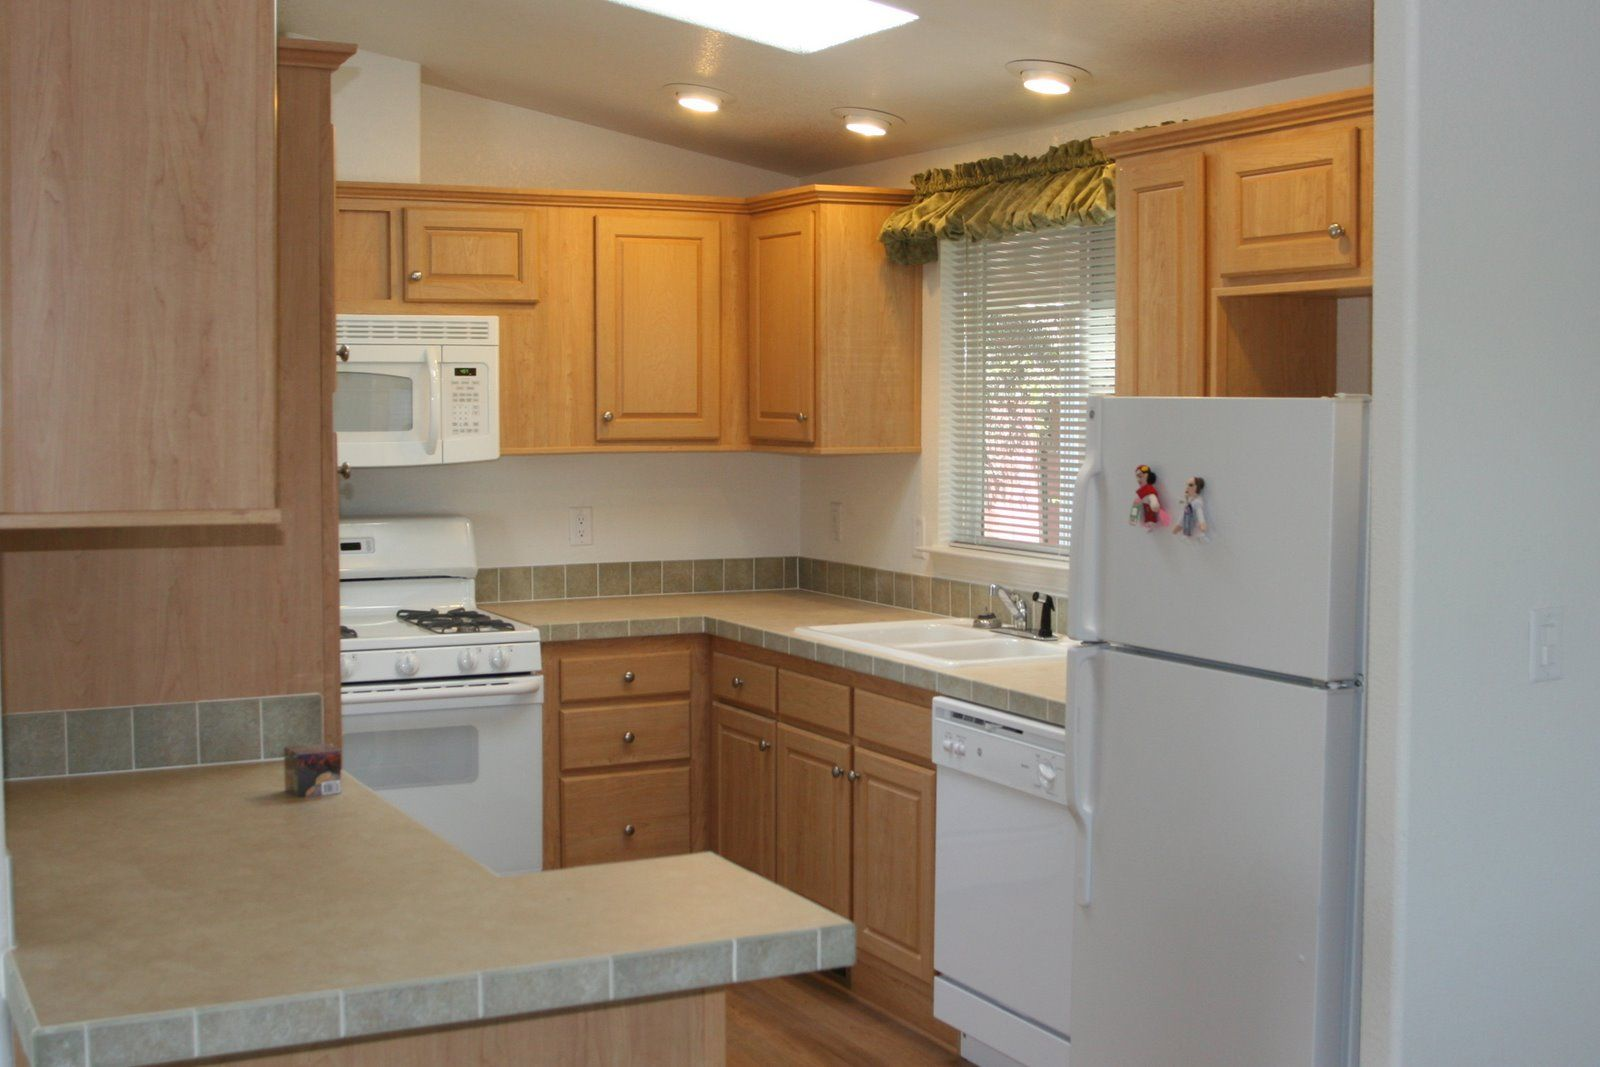 17 best ideas about cabinet refacing cost on pinterest kitchen cabinet doors cabinet refacing and refacing kitchen cabinets